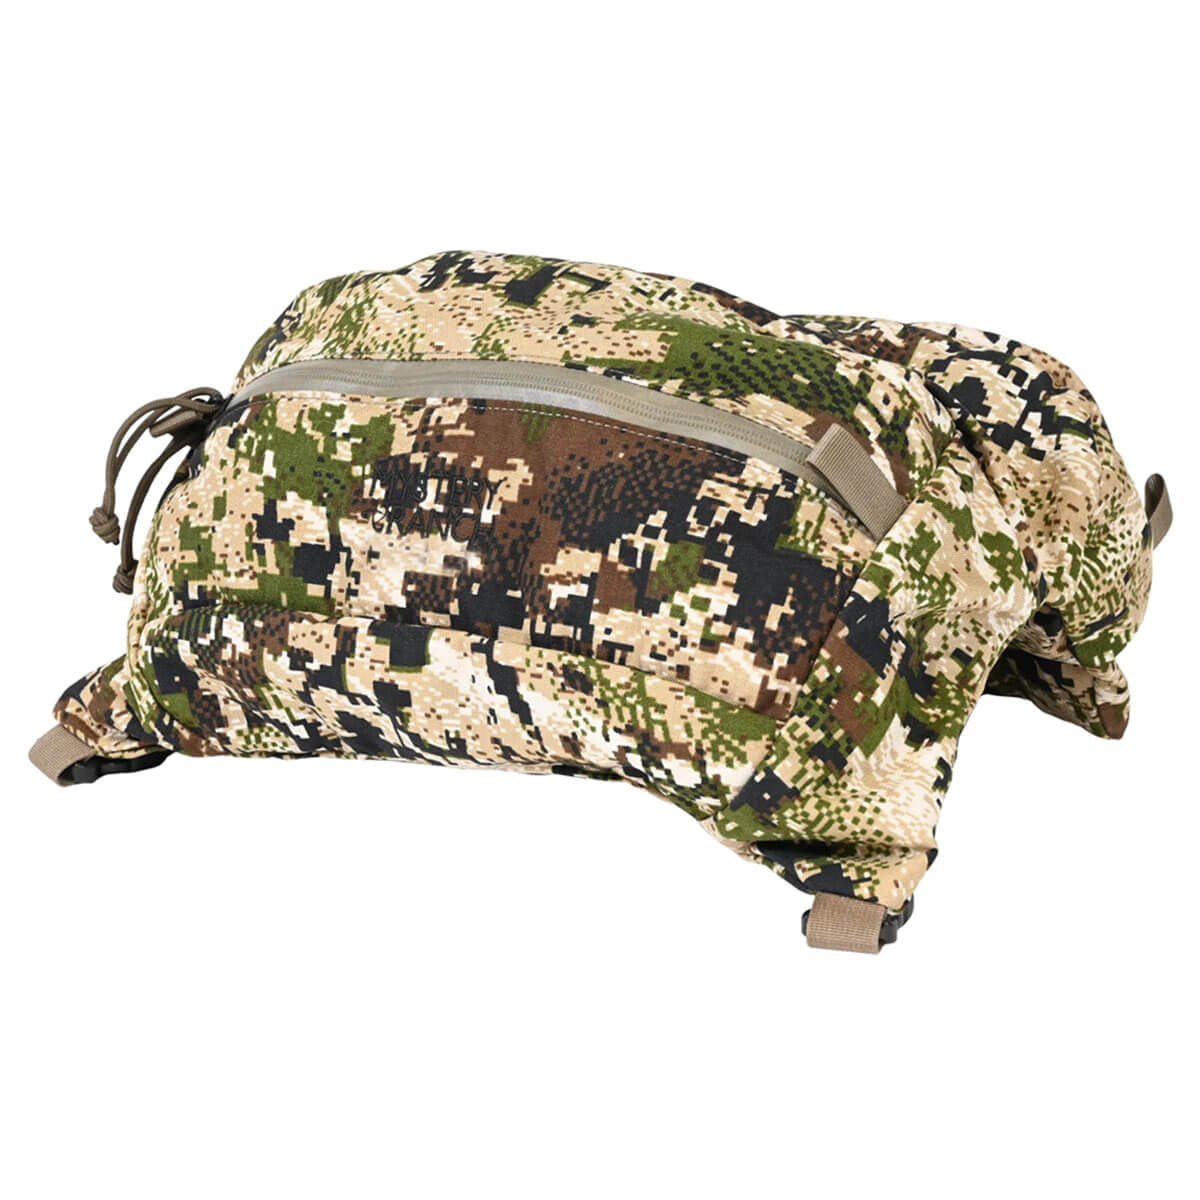 HUNTING DAYPACK LID